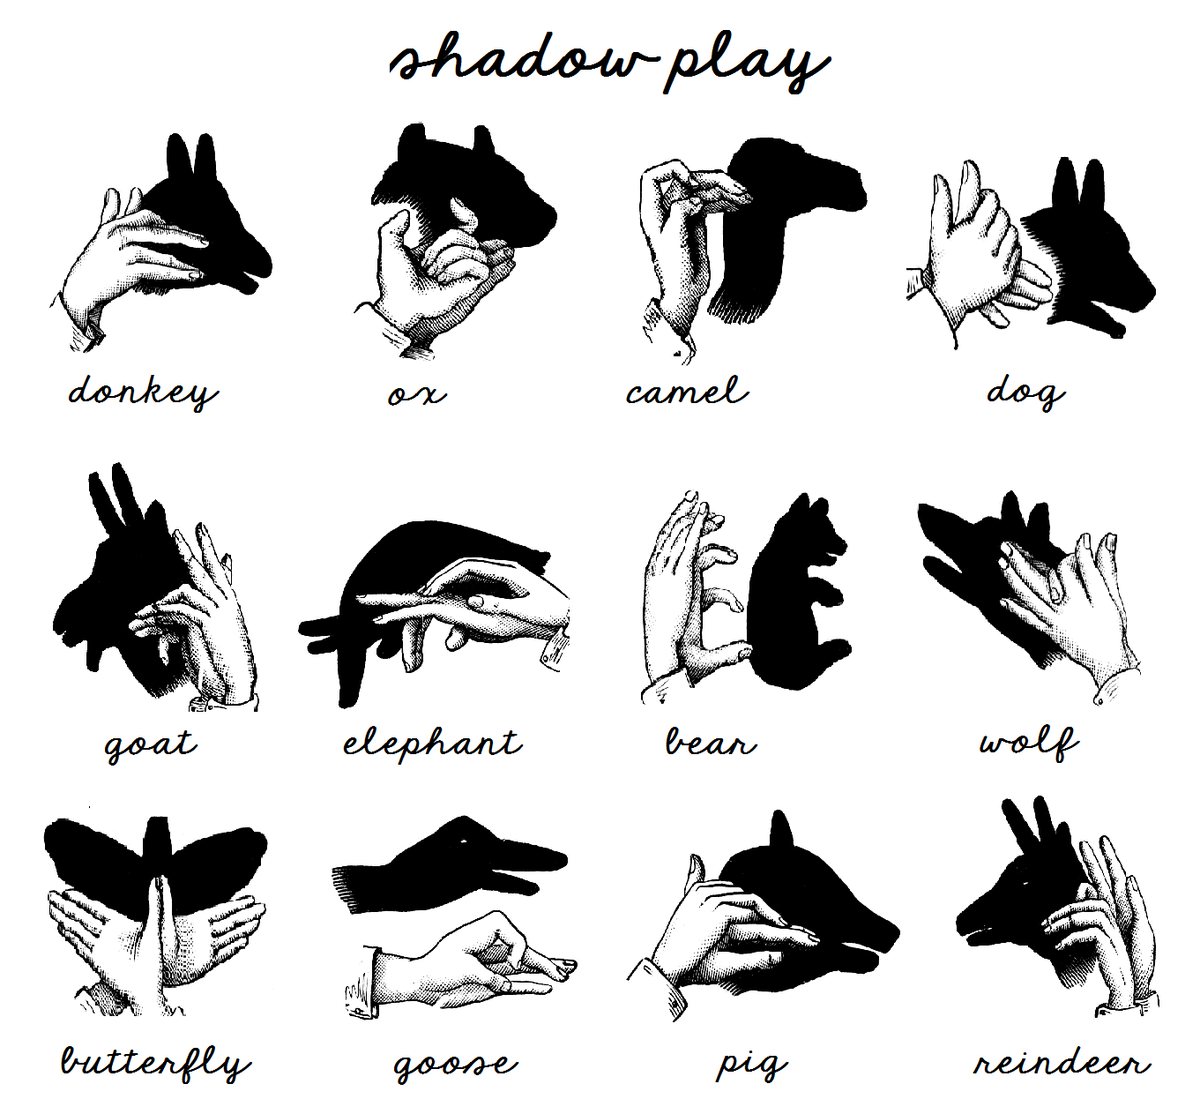 Useful shadow puppet how-to guide   https://t.co/5VCqABSJzB https://t.co/LuJYm3SxXV